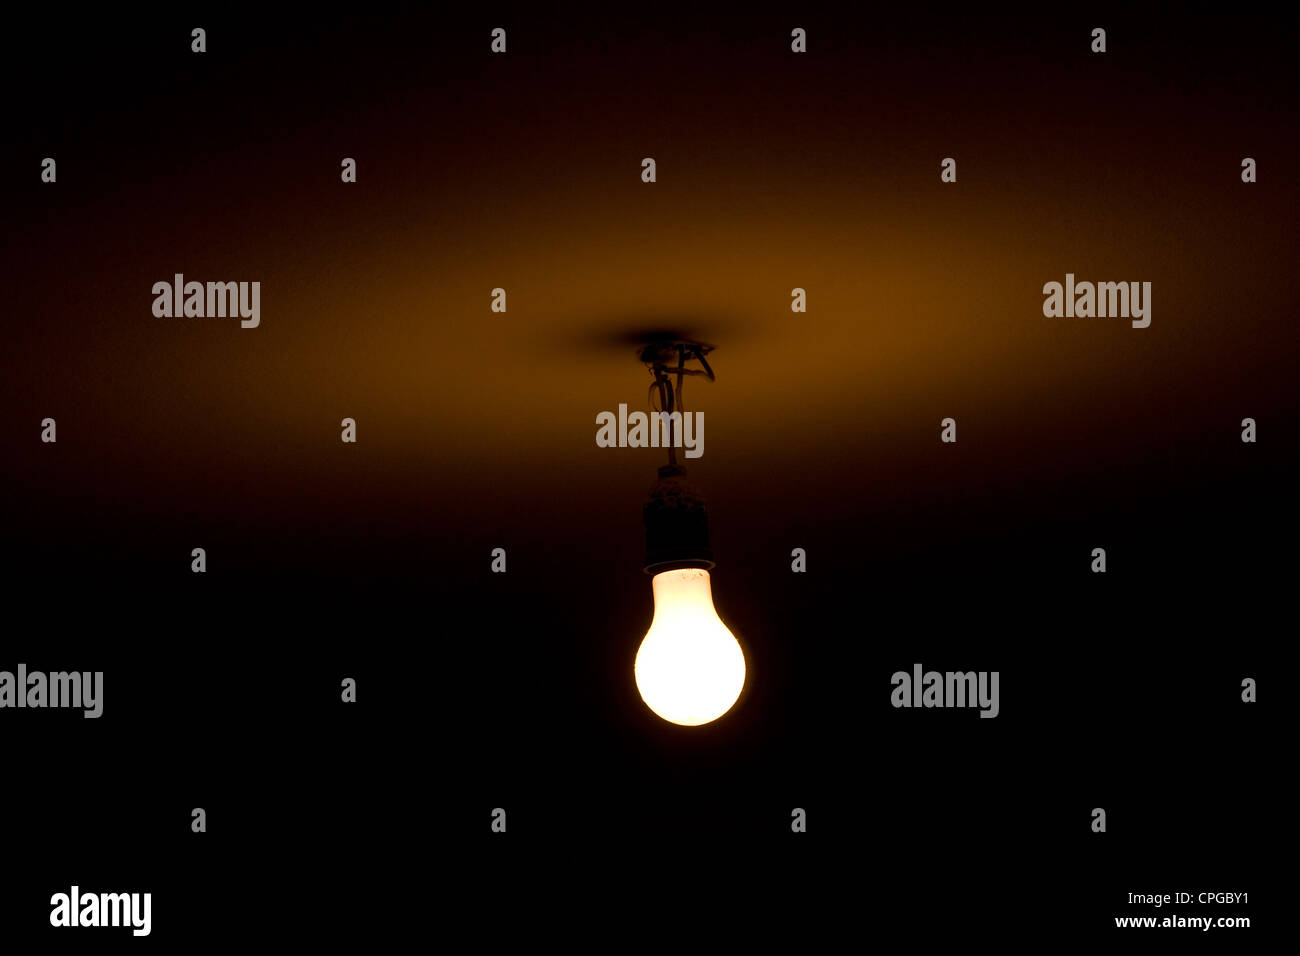 Bare light bulb hanging from the ceiling - Stock Image